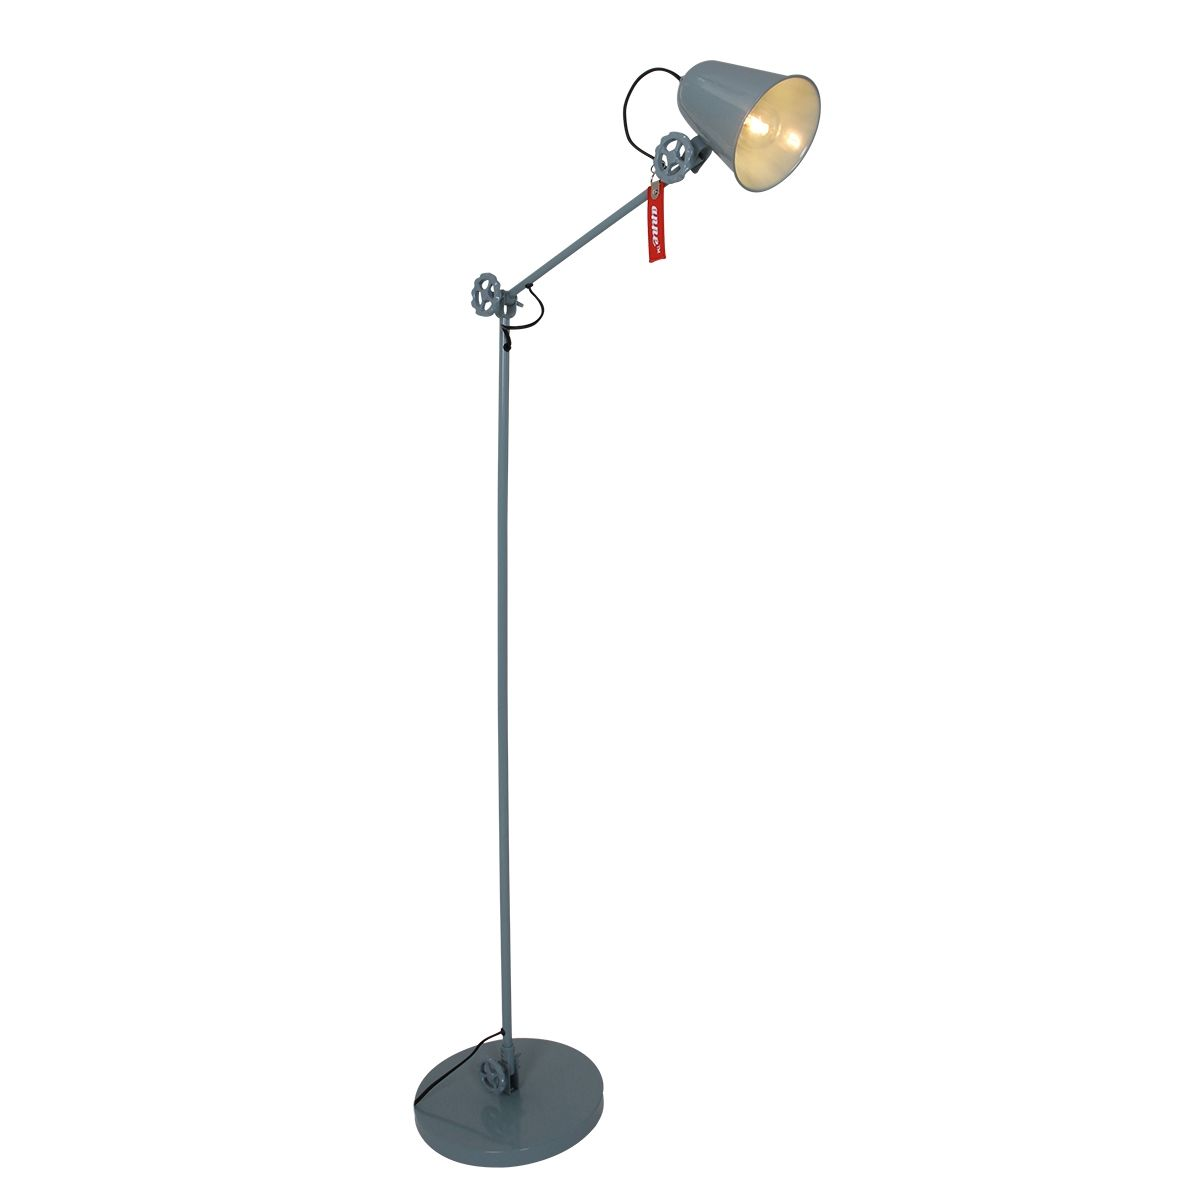 Dolphin vloerlamp Anne Lighting